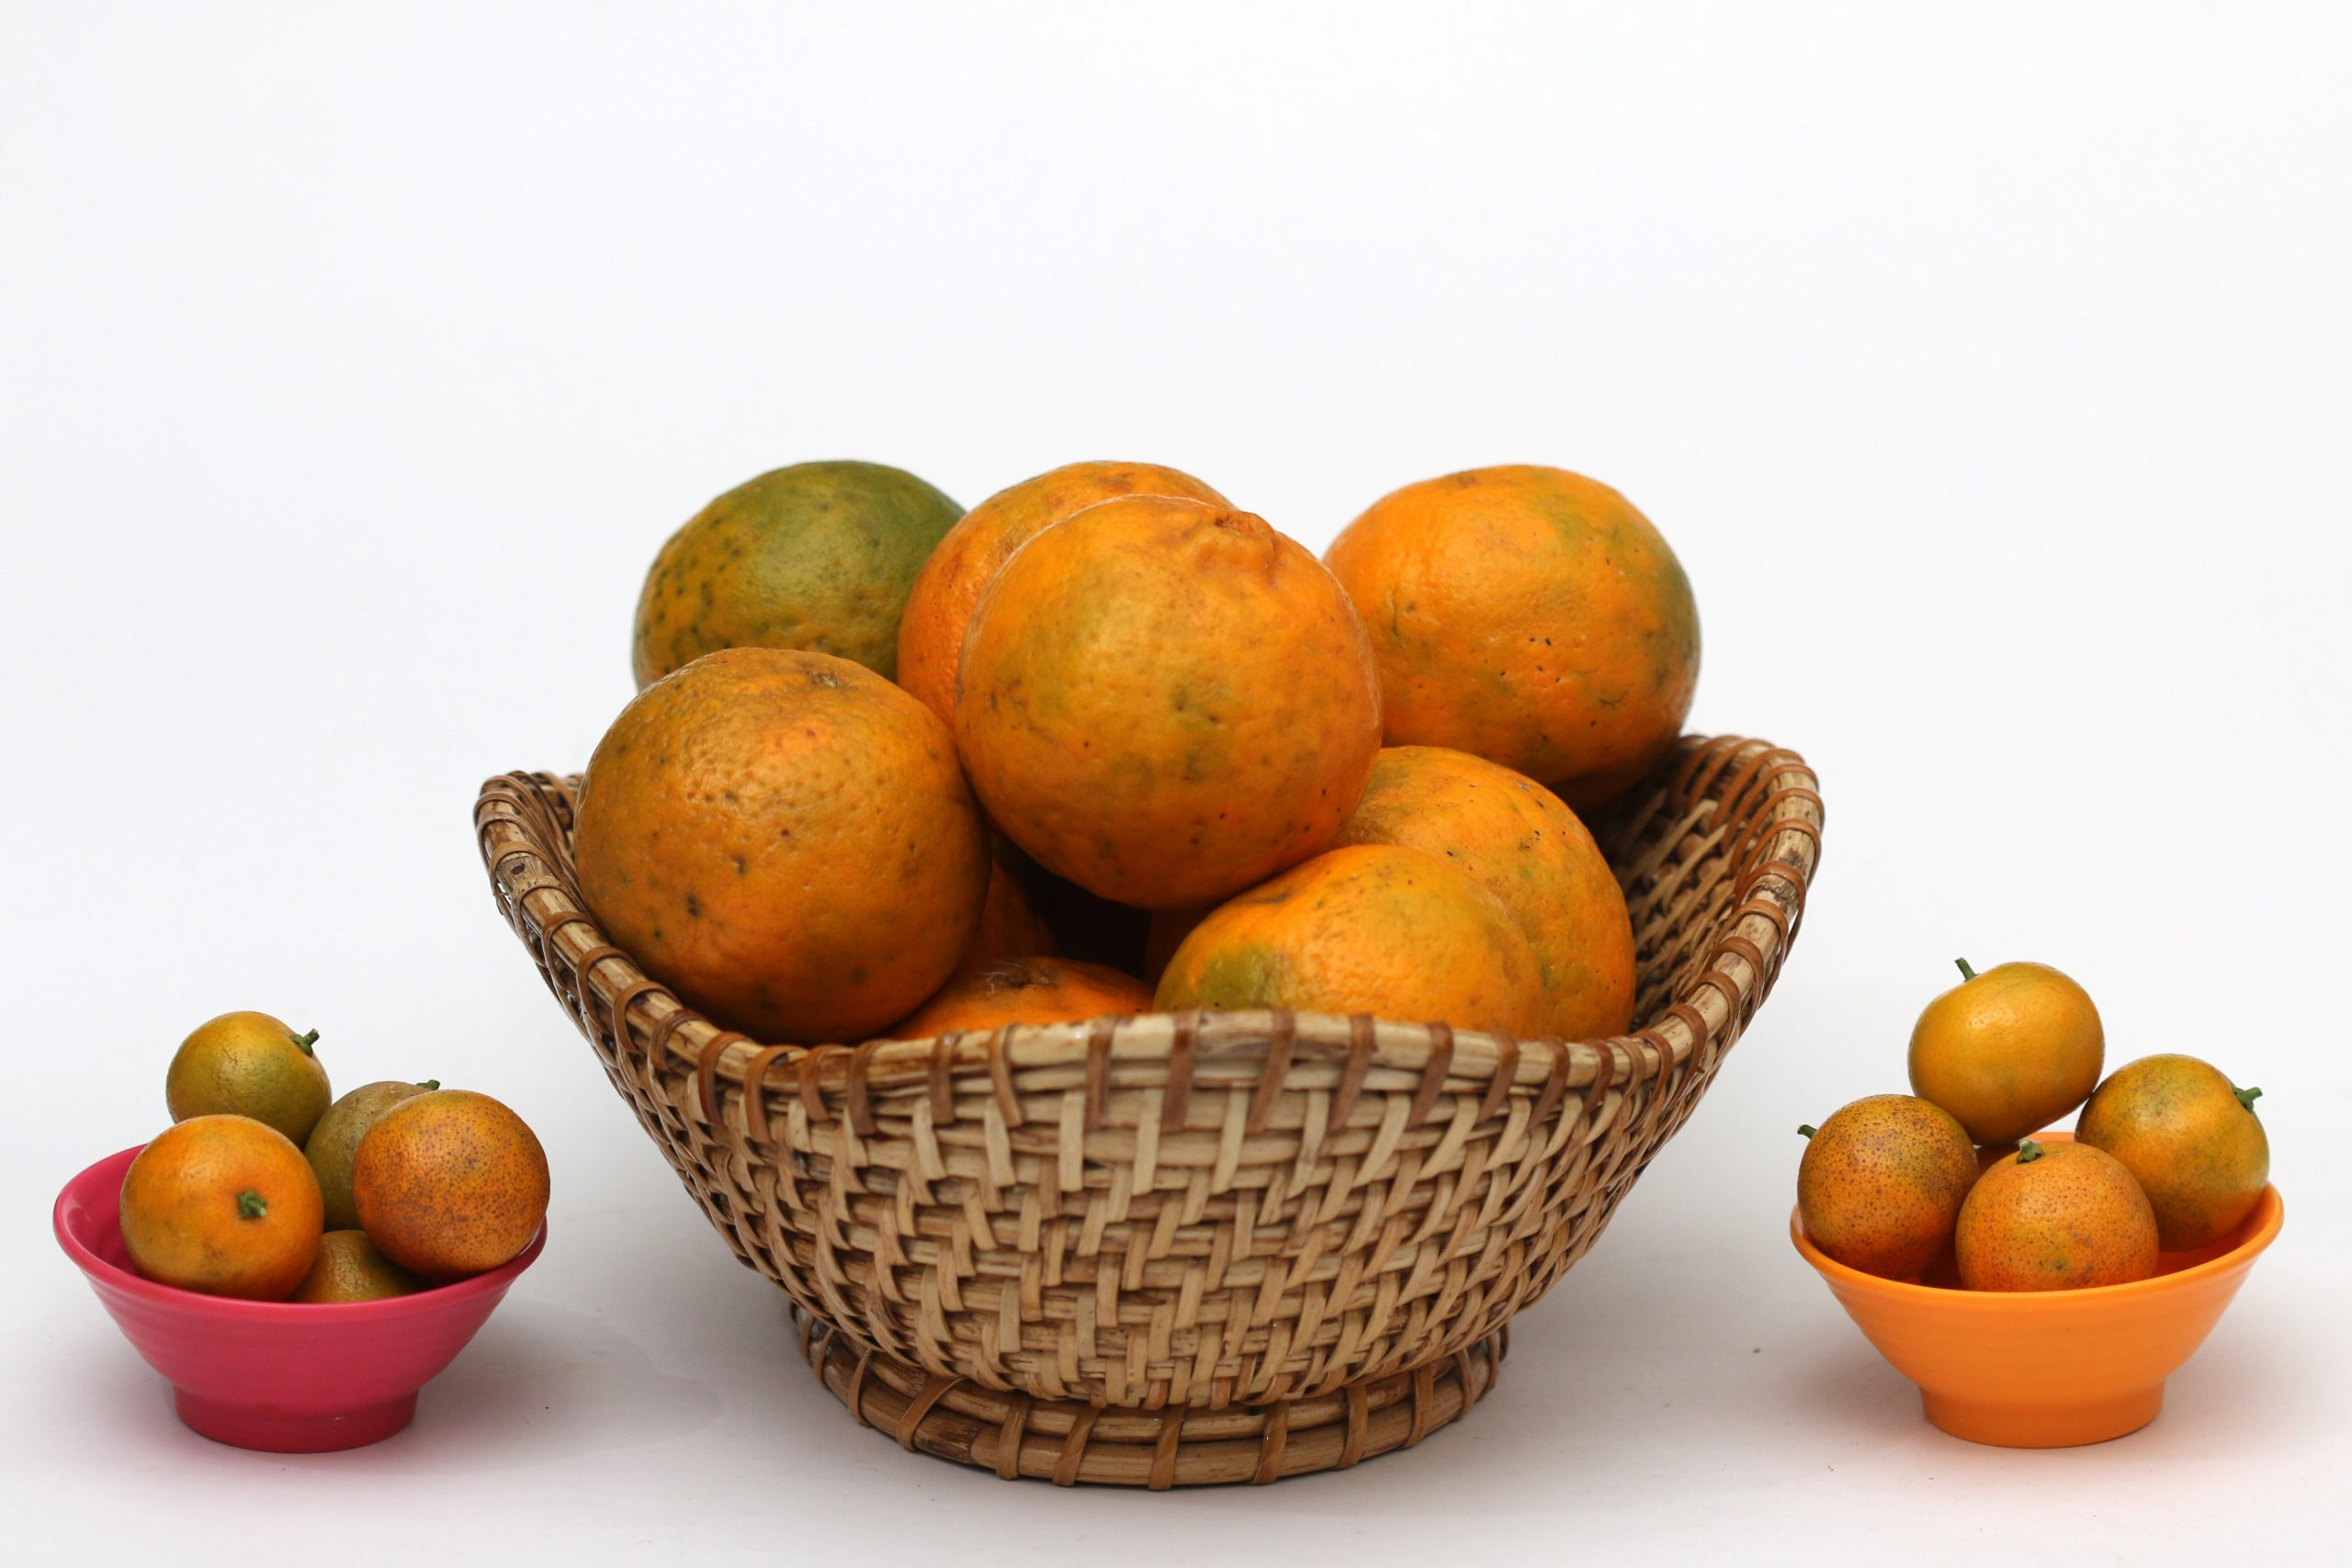 Fruits in a basket and bowls